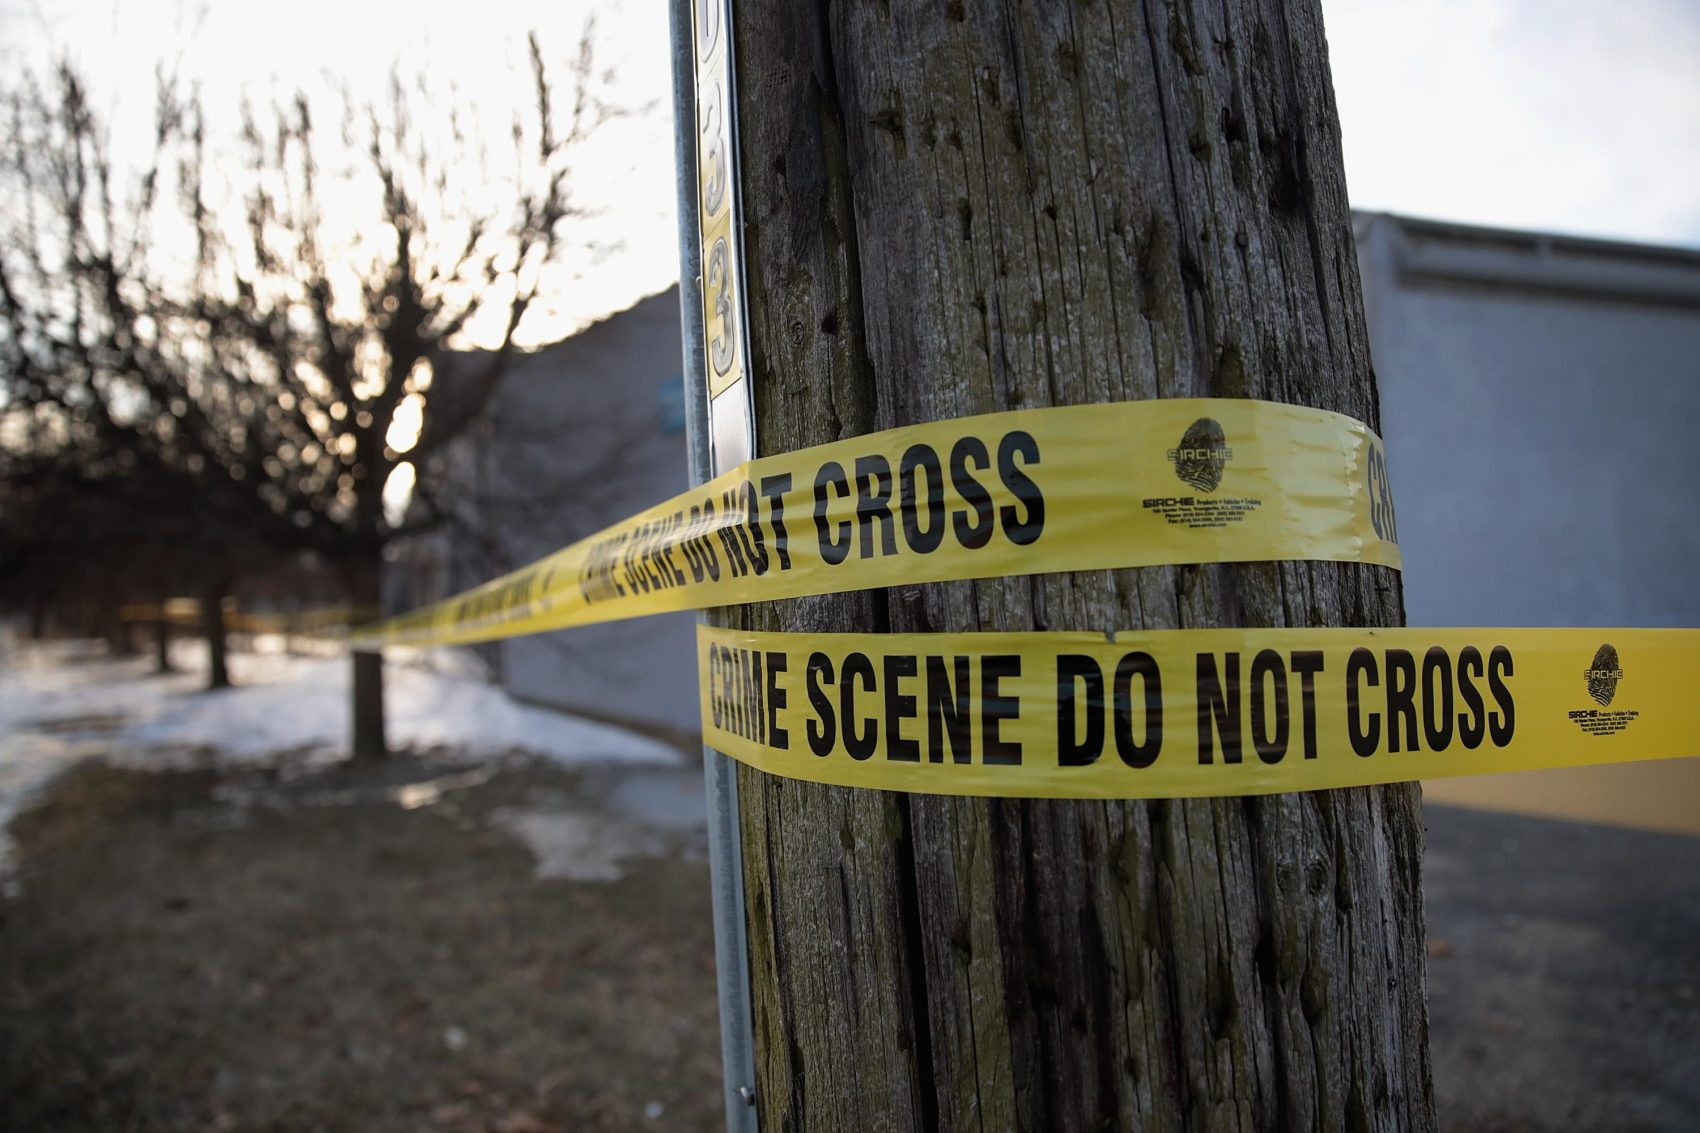 Crime-scene tape surrounds the Shetland Business Park following the shooting at the Henry Pratt Company on Feb. 16, 2019 in Aurora, Ill. (Scott Olson/Getty Images)